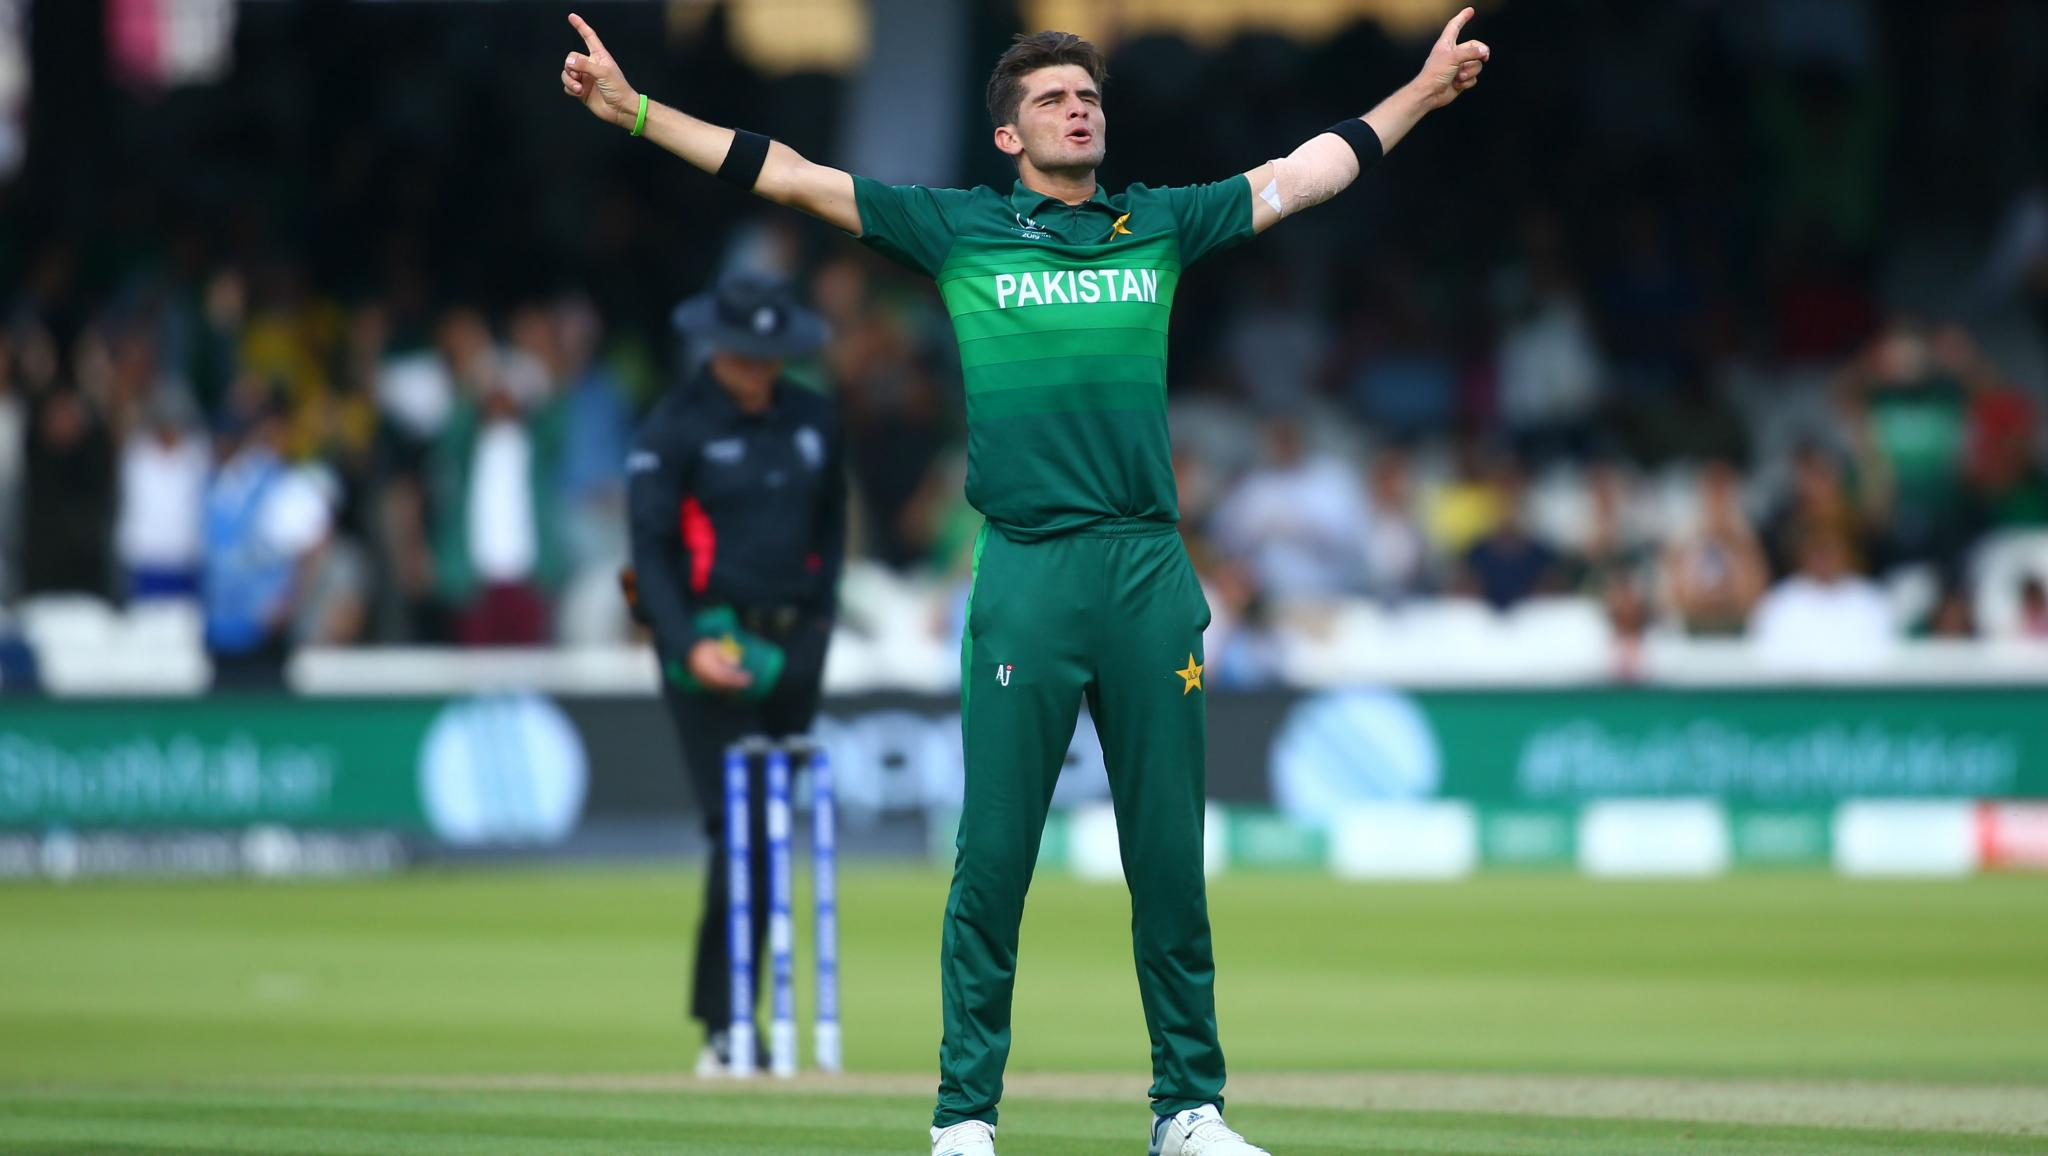 From Shaheen Afridi Accused of Masturbating on Cam to Imam-Ul-Haq's Multiple Affairs, Here are Four Instances When Pakistani Cricketers Found Themselves in Hot Waters (Watch Video)